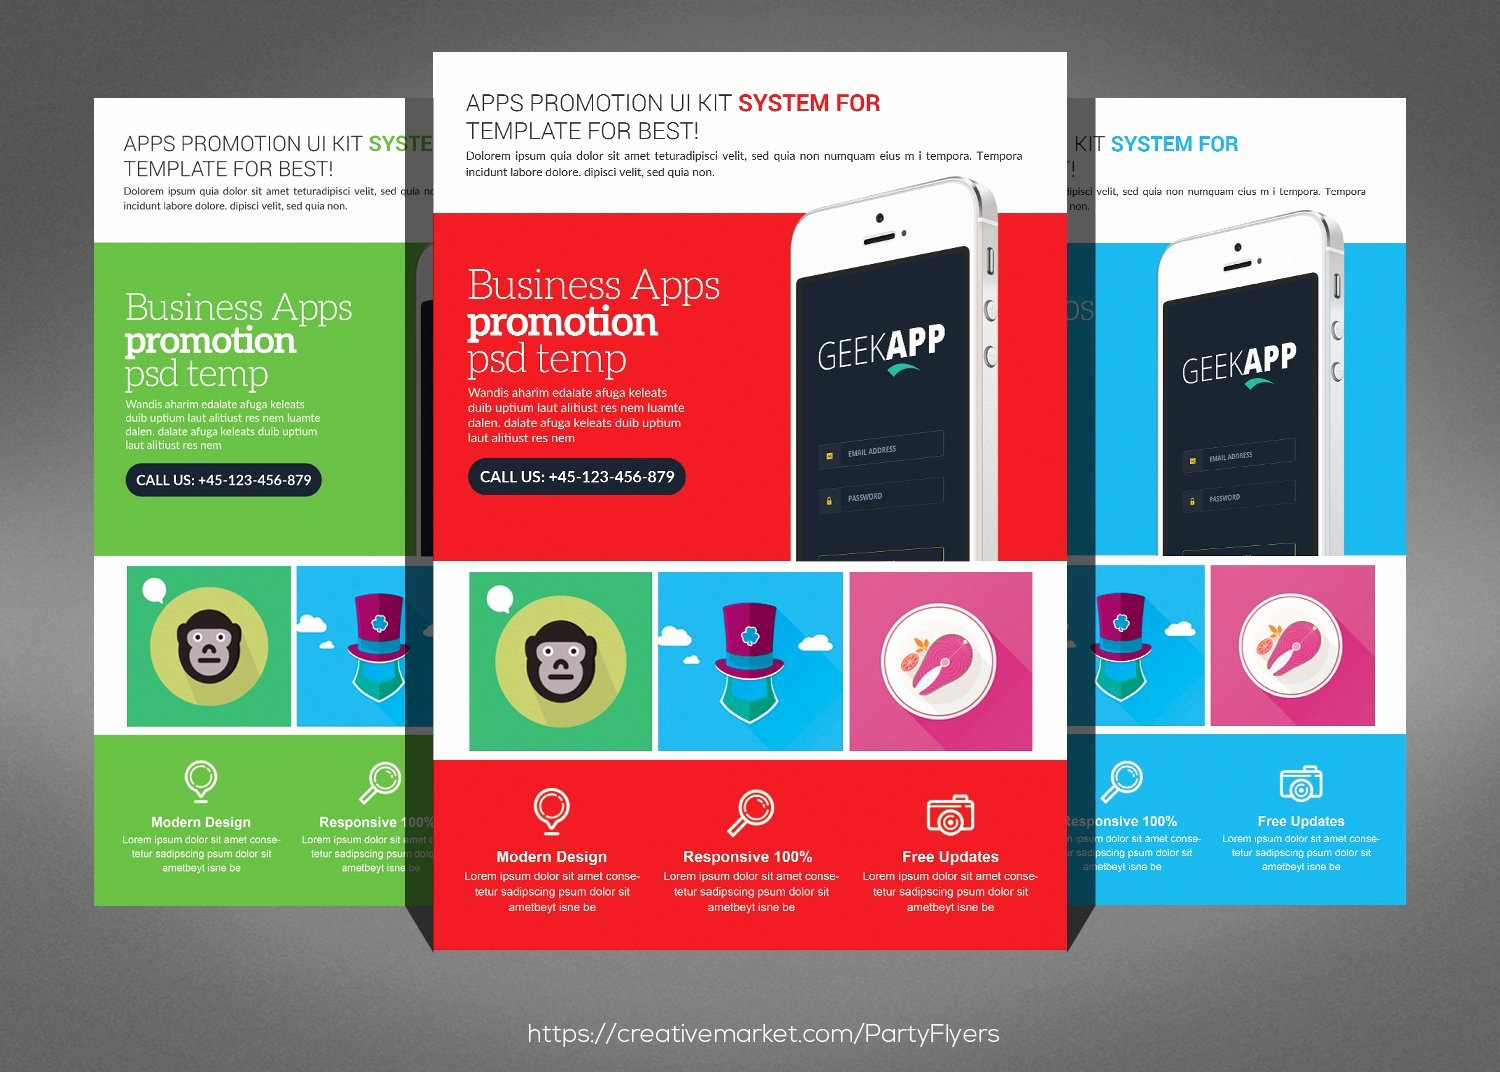 Computer Repair Flyer Templates Inspirational Mobile & Puter Repair Flyer Flyer Templates